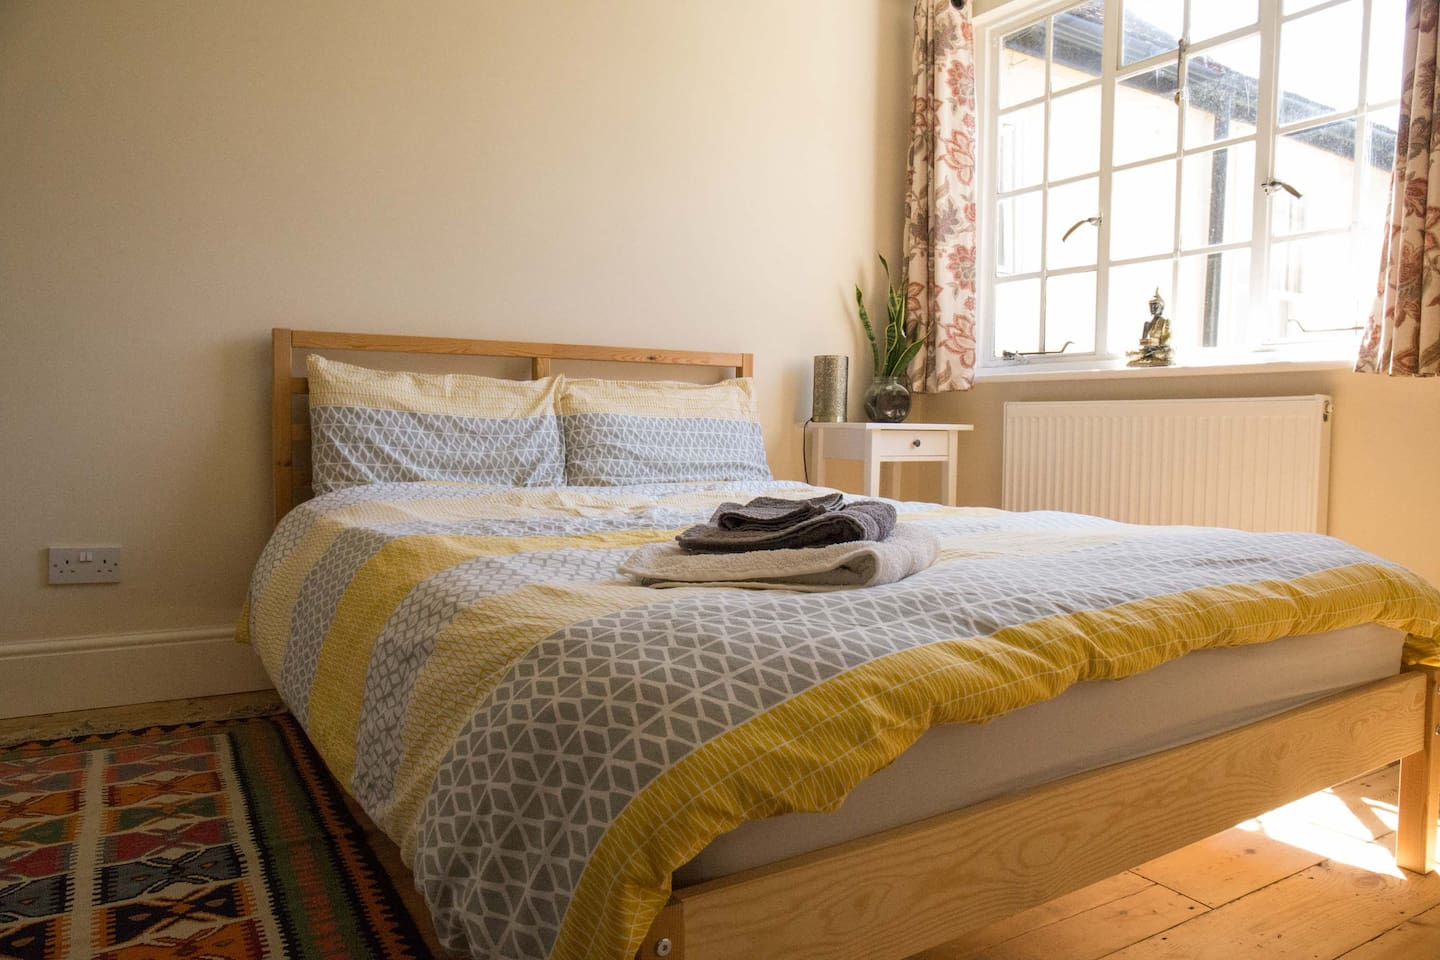 Bright room with a comfy double bed